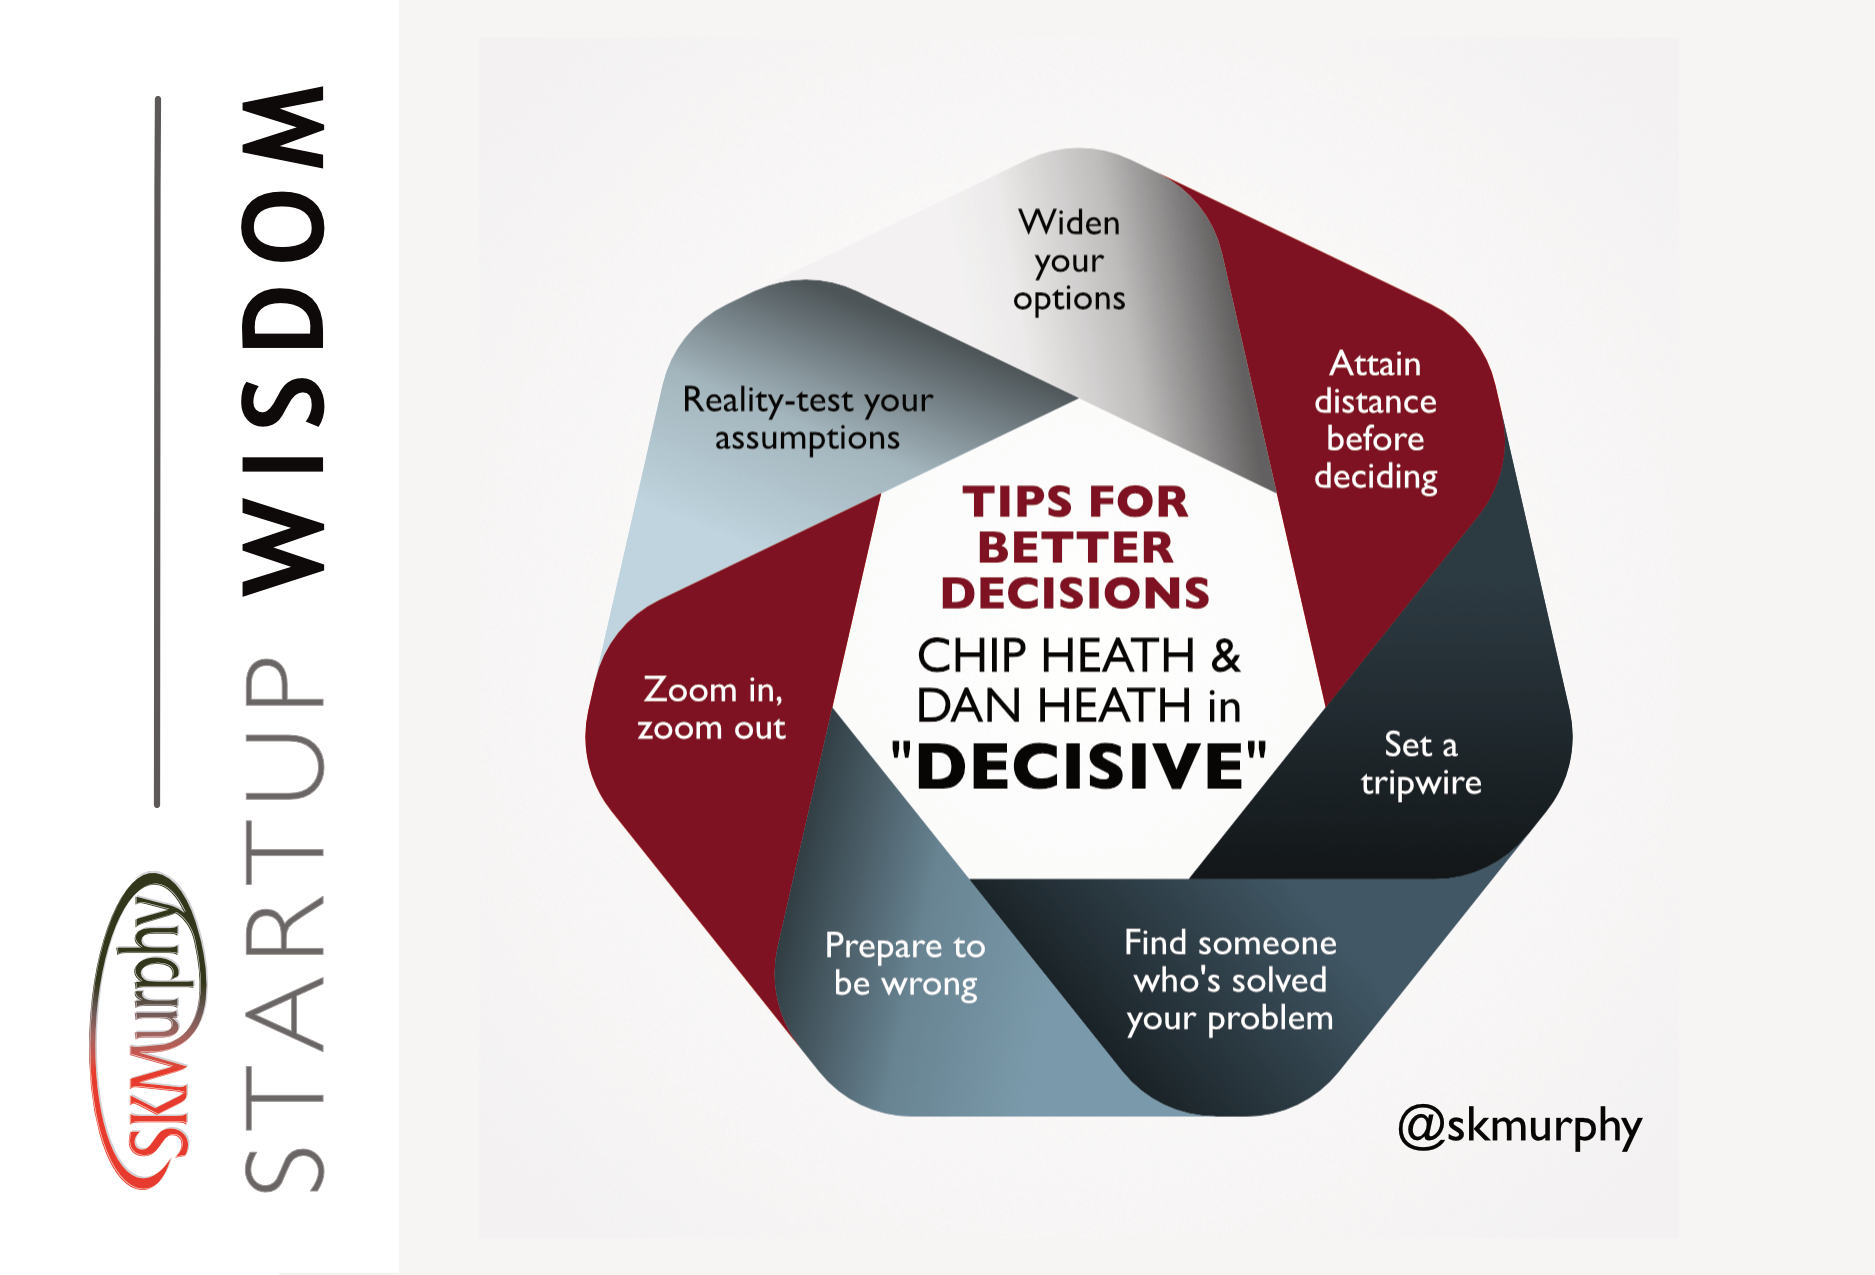 Tips for Better Decisions from 'Decisive' by Chip and Dan Heath